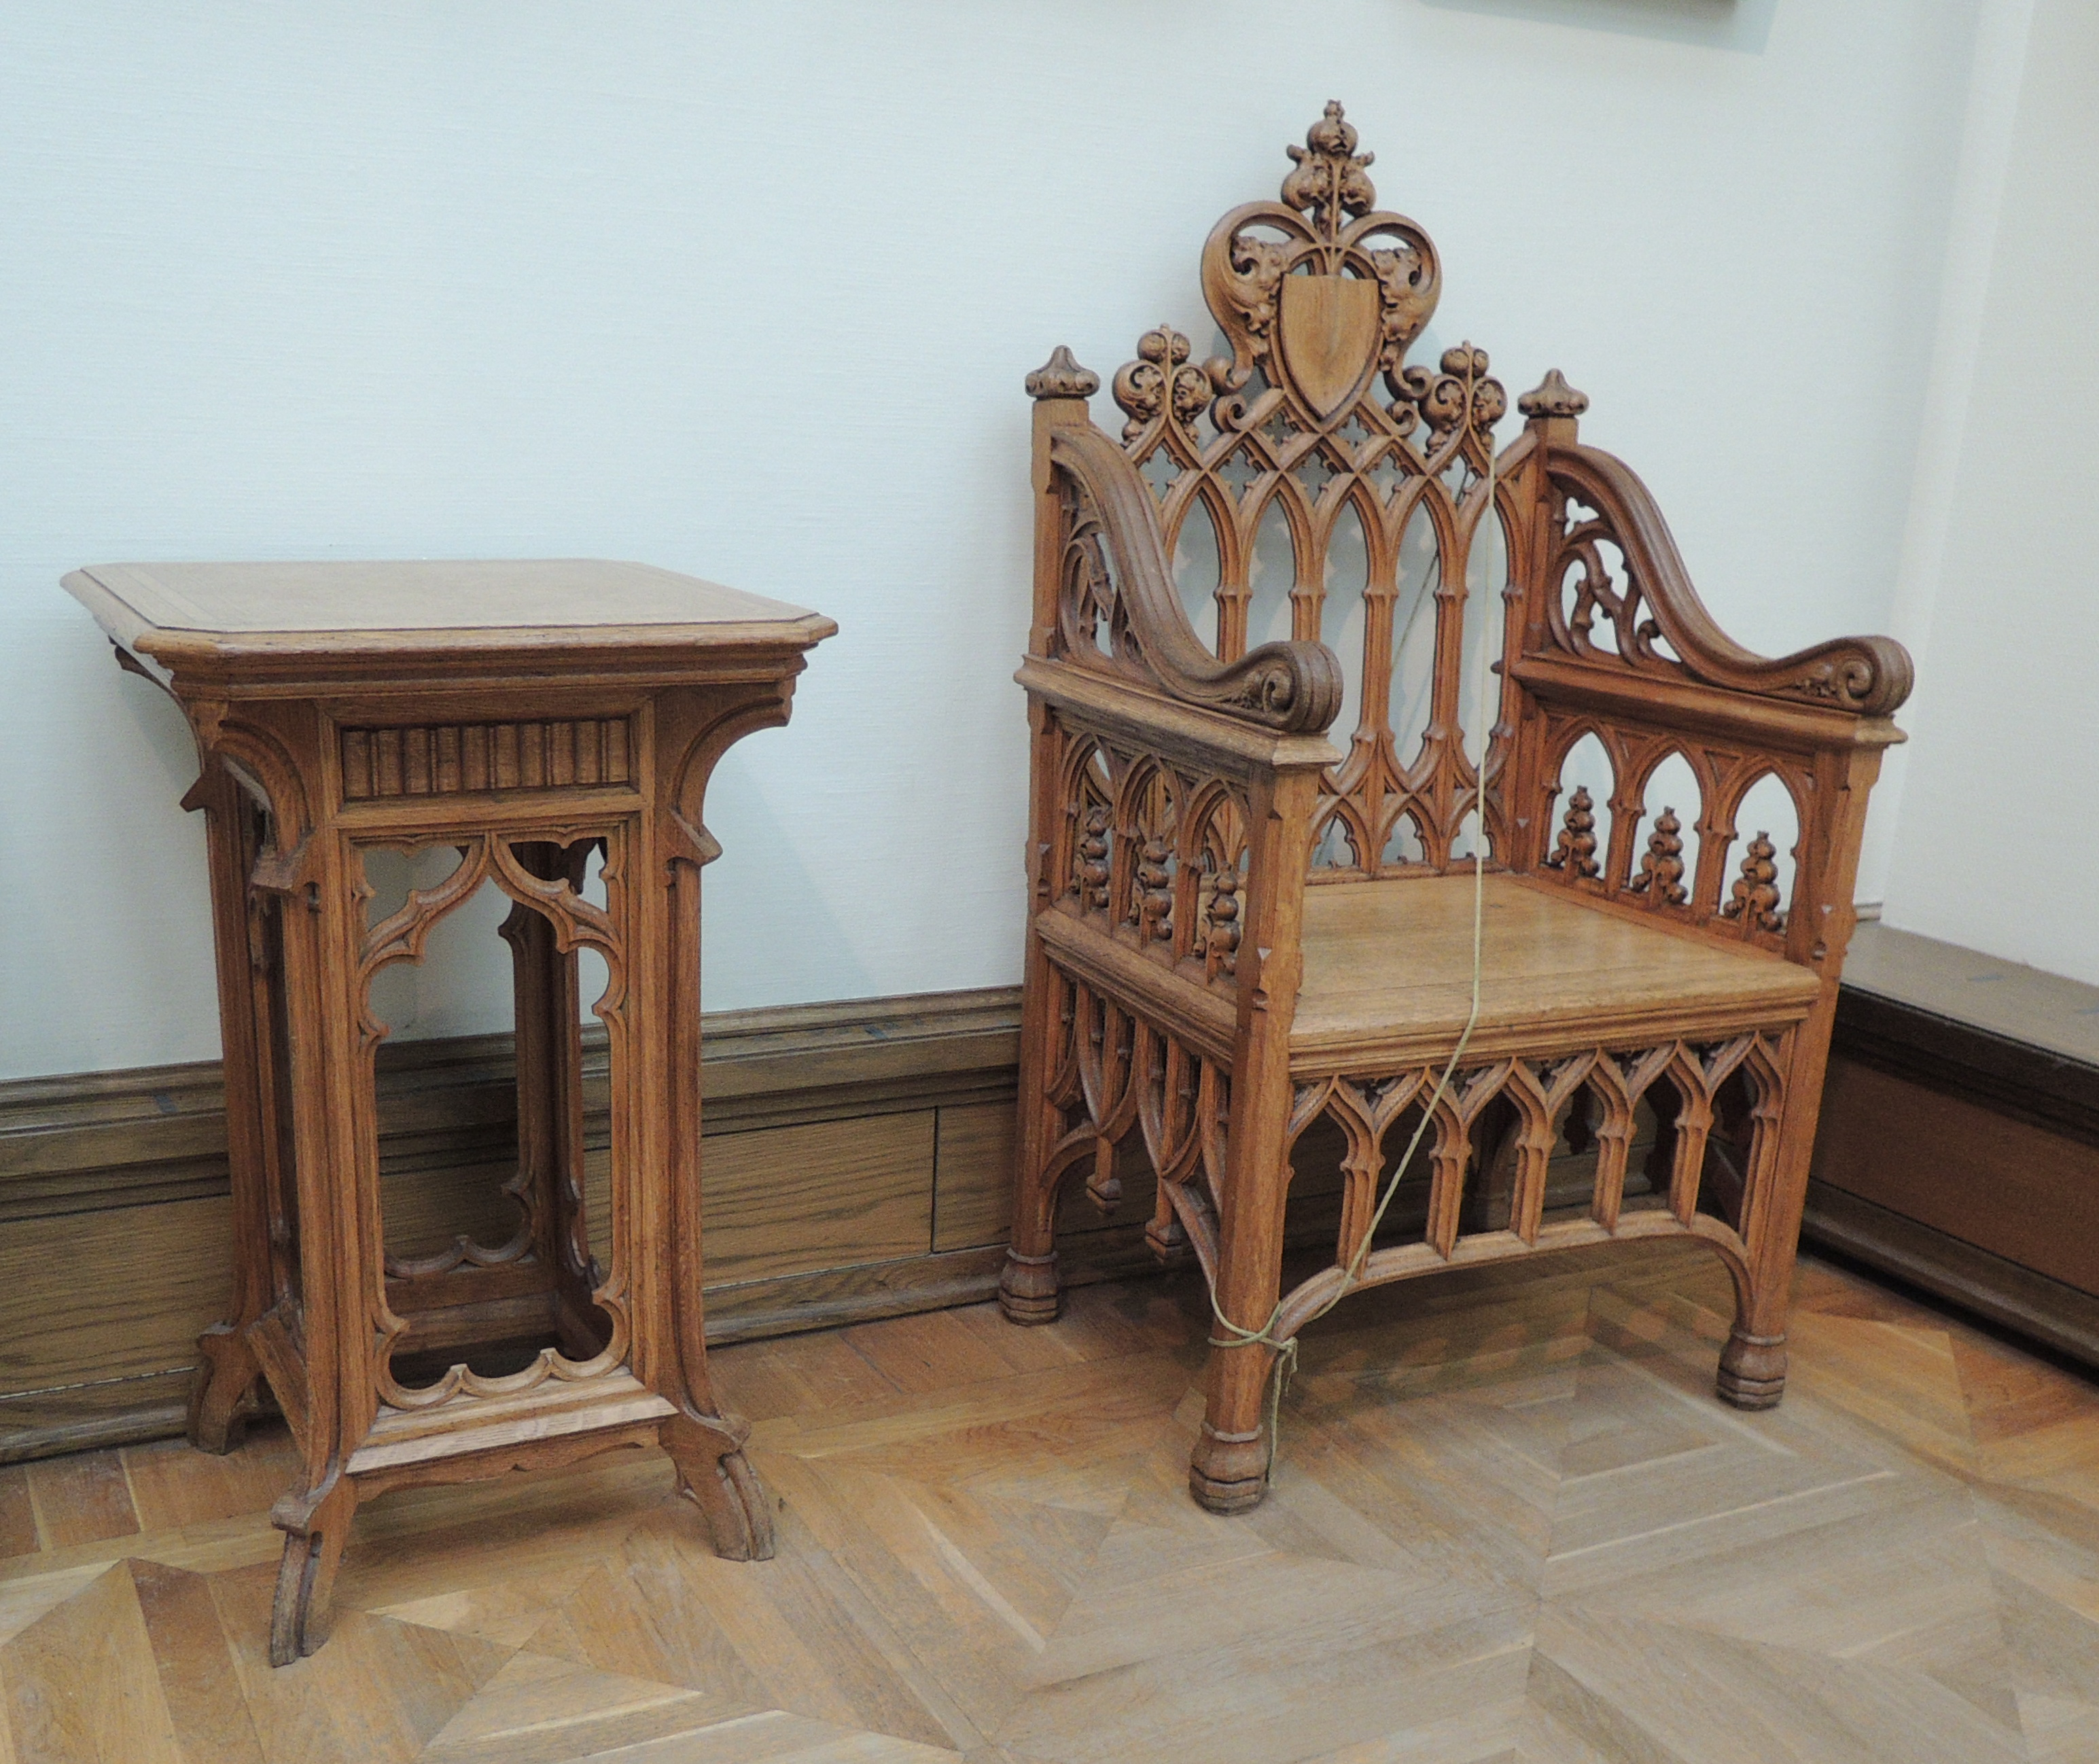 Gothic furniture chair - Original File